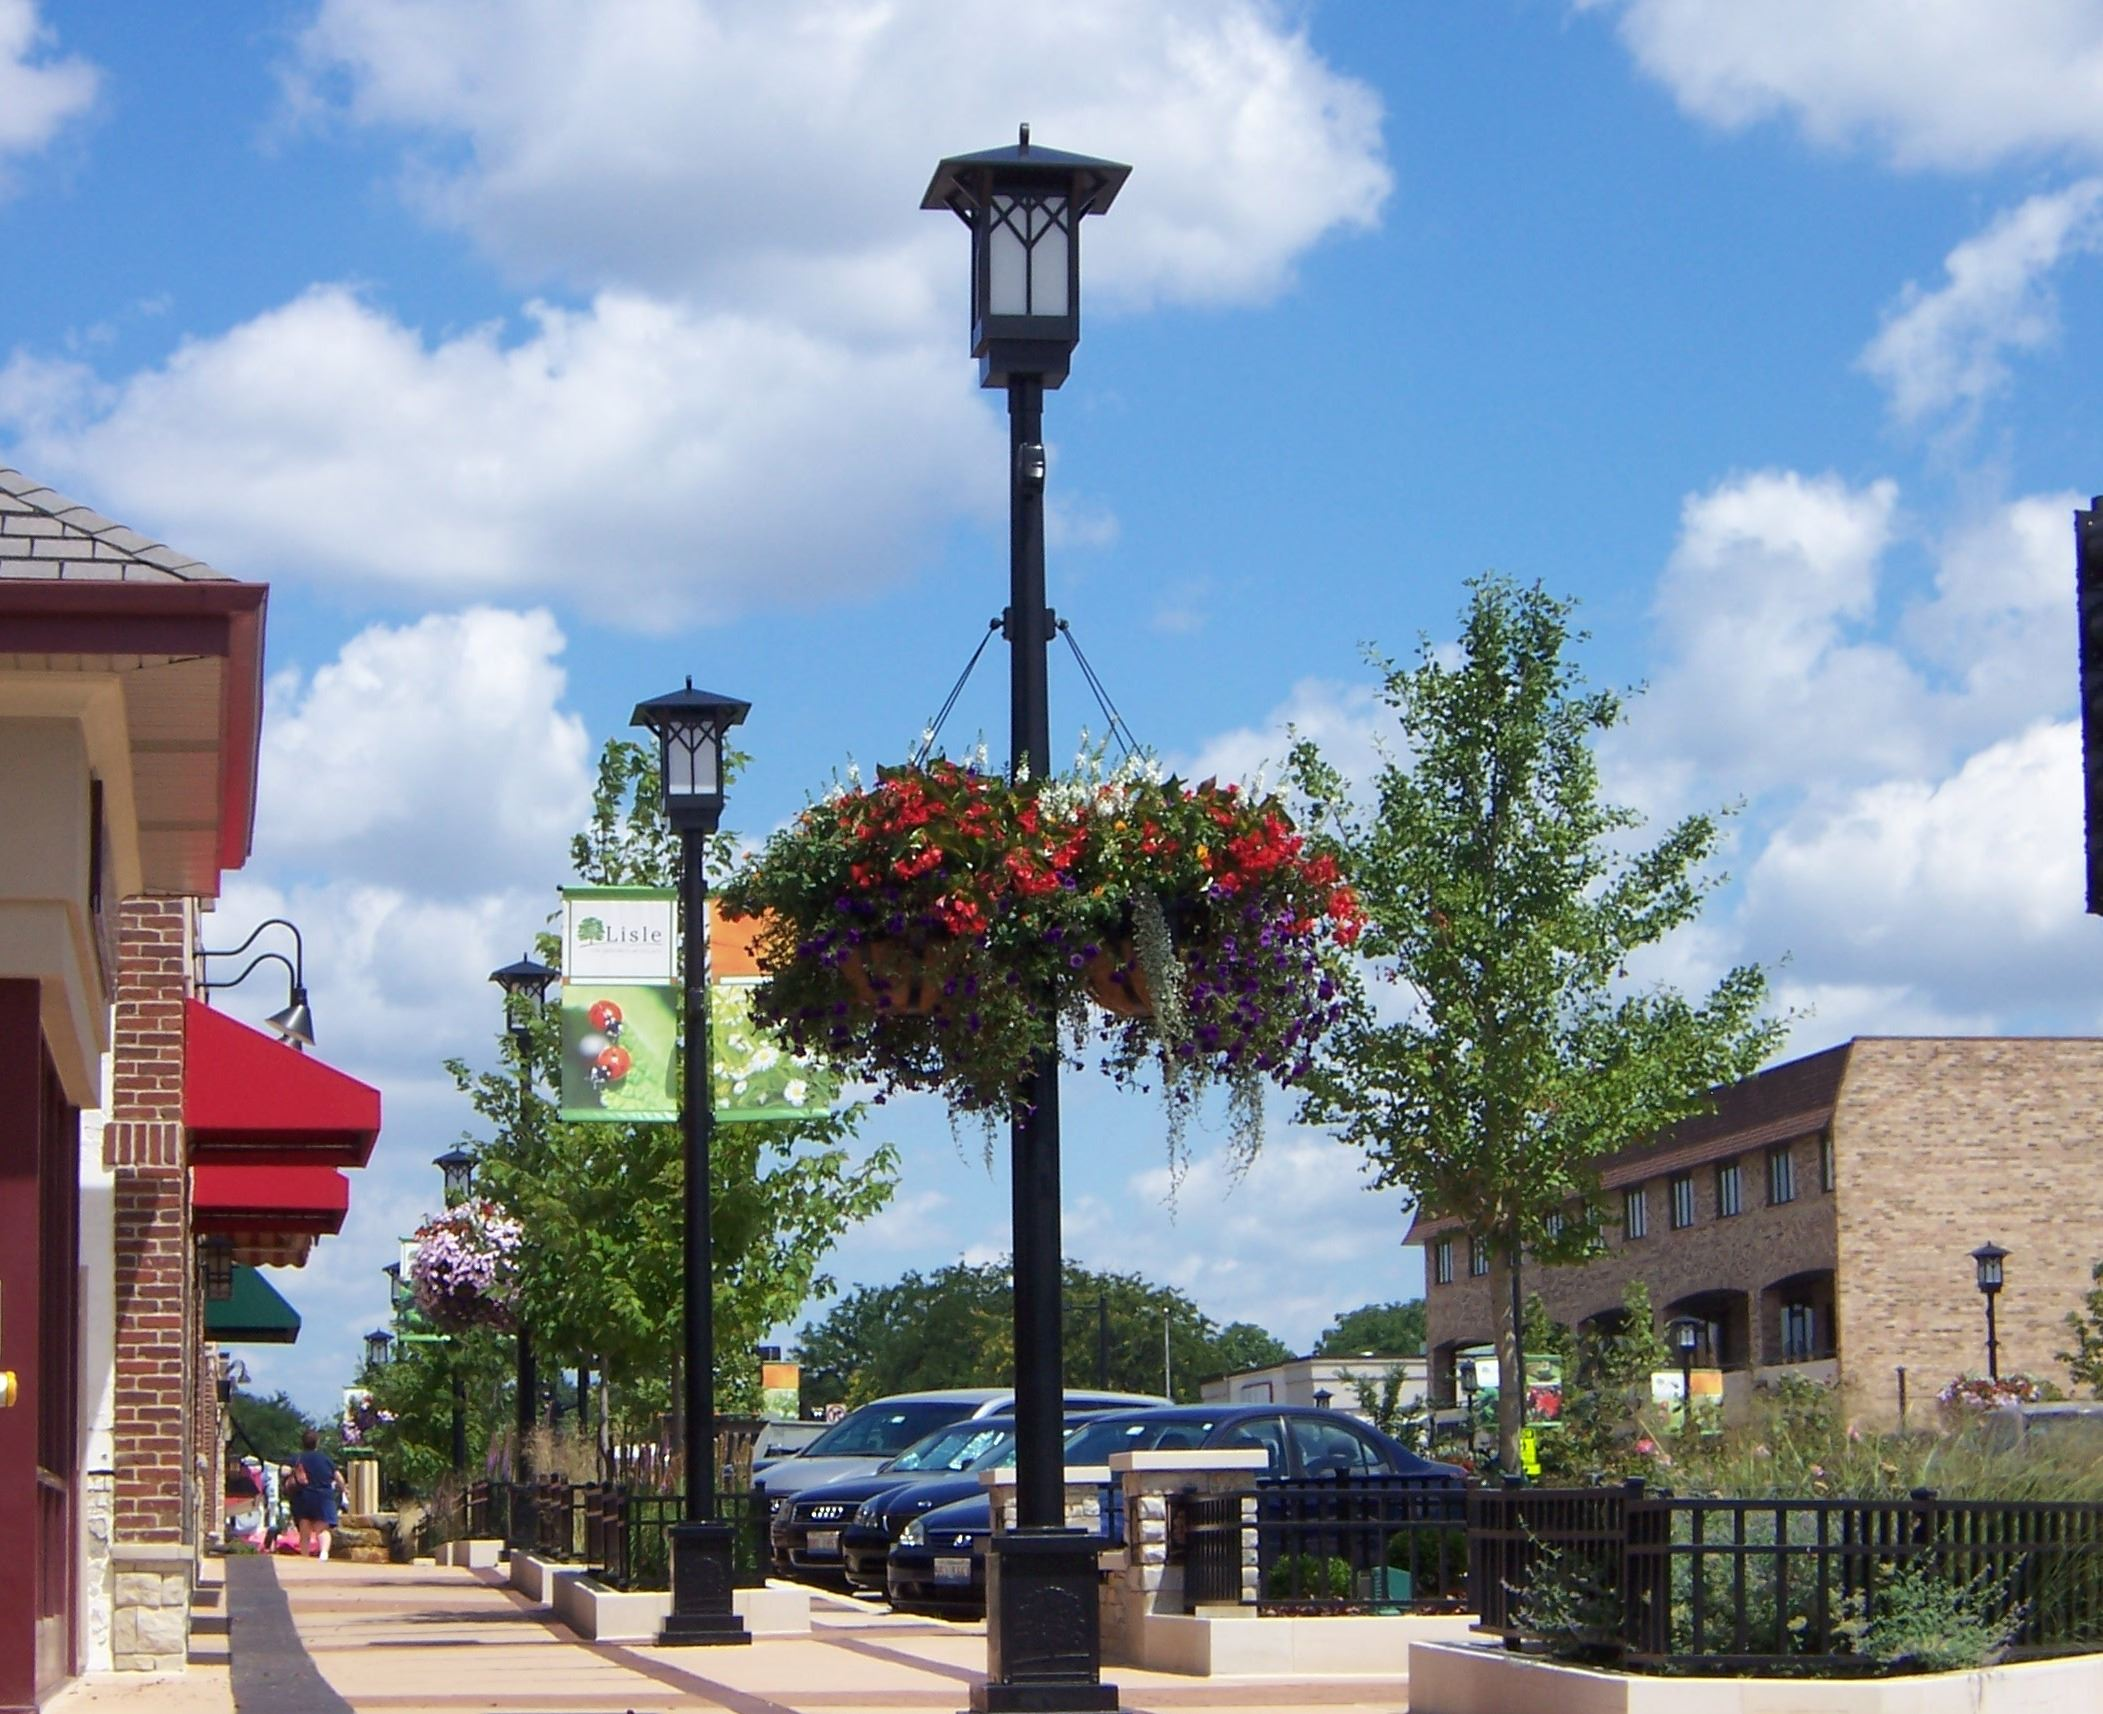 Summer is Downtown Lisle